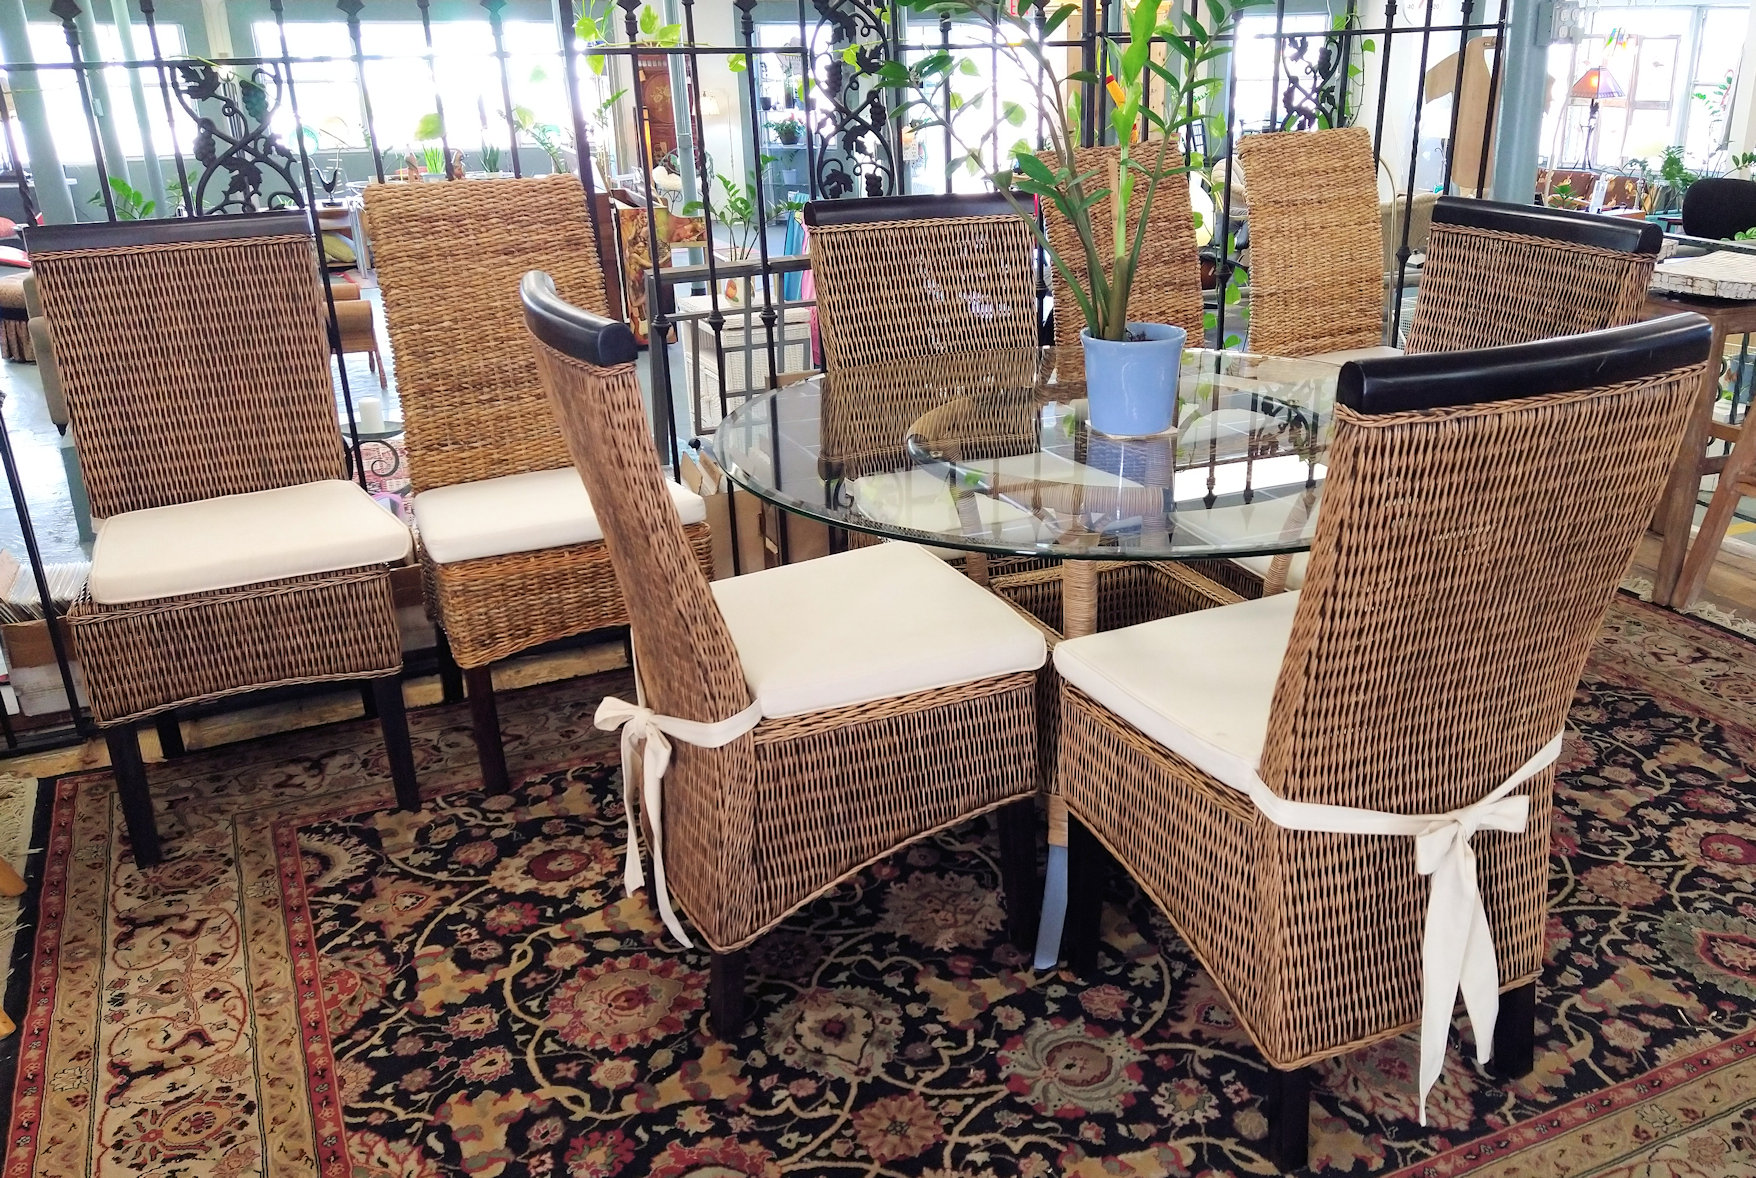 DR0089-Wicker-glasstop-table-4chairs